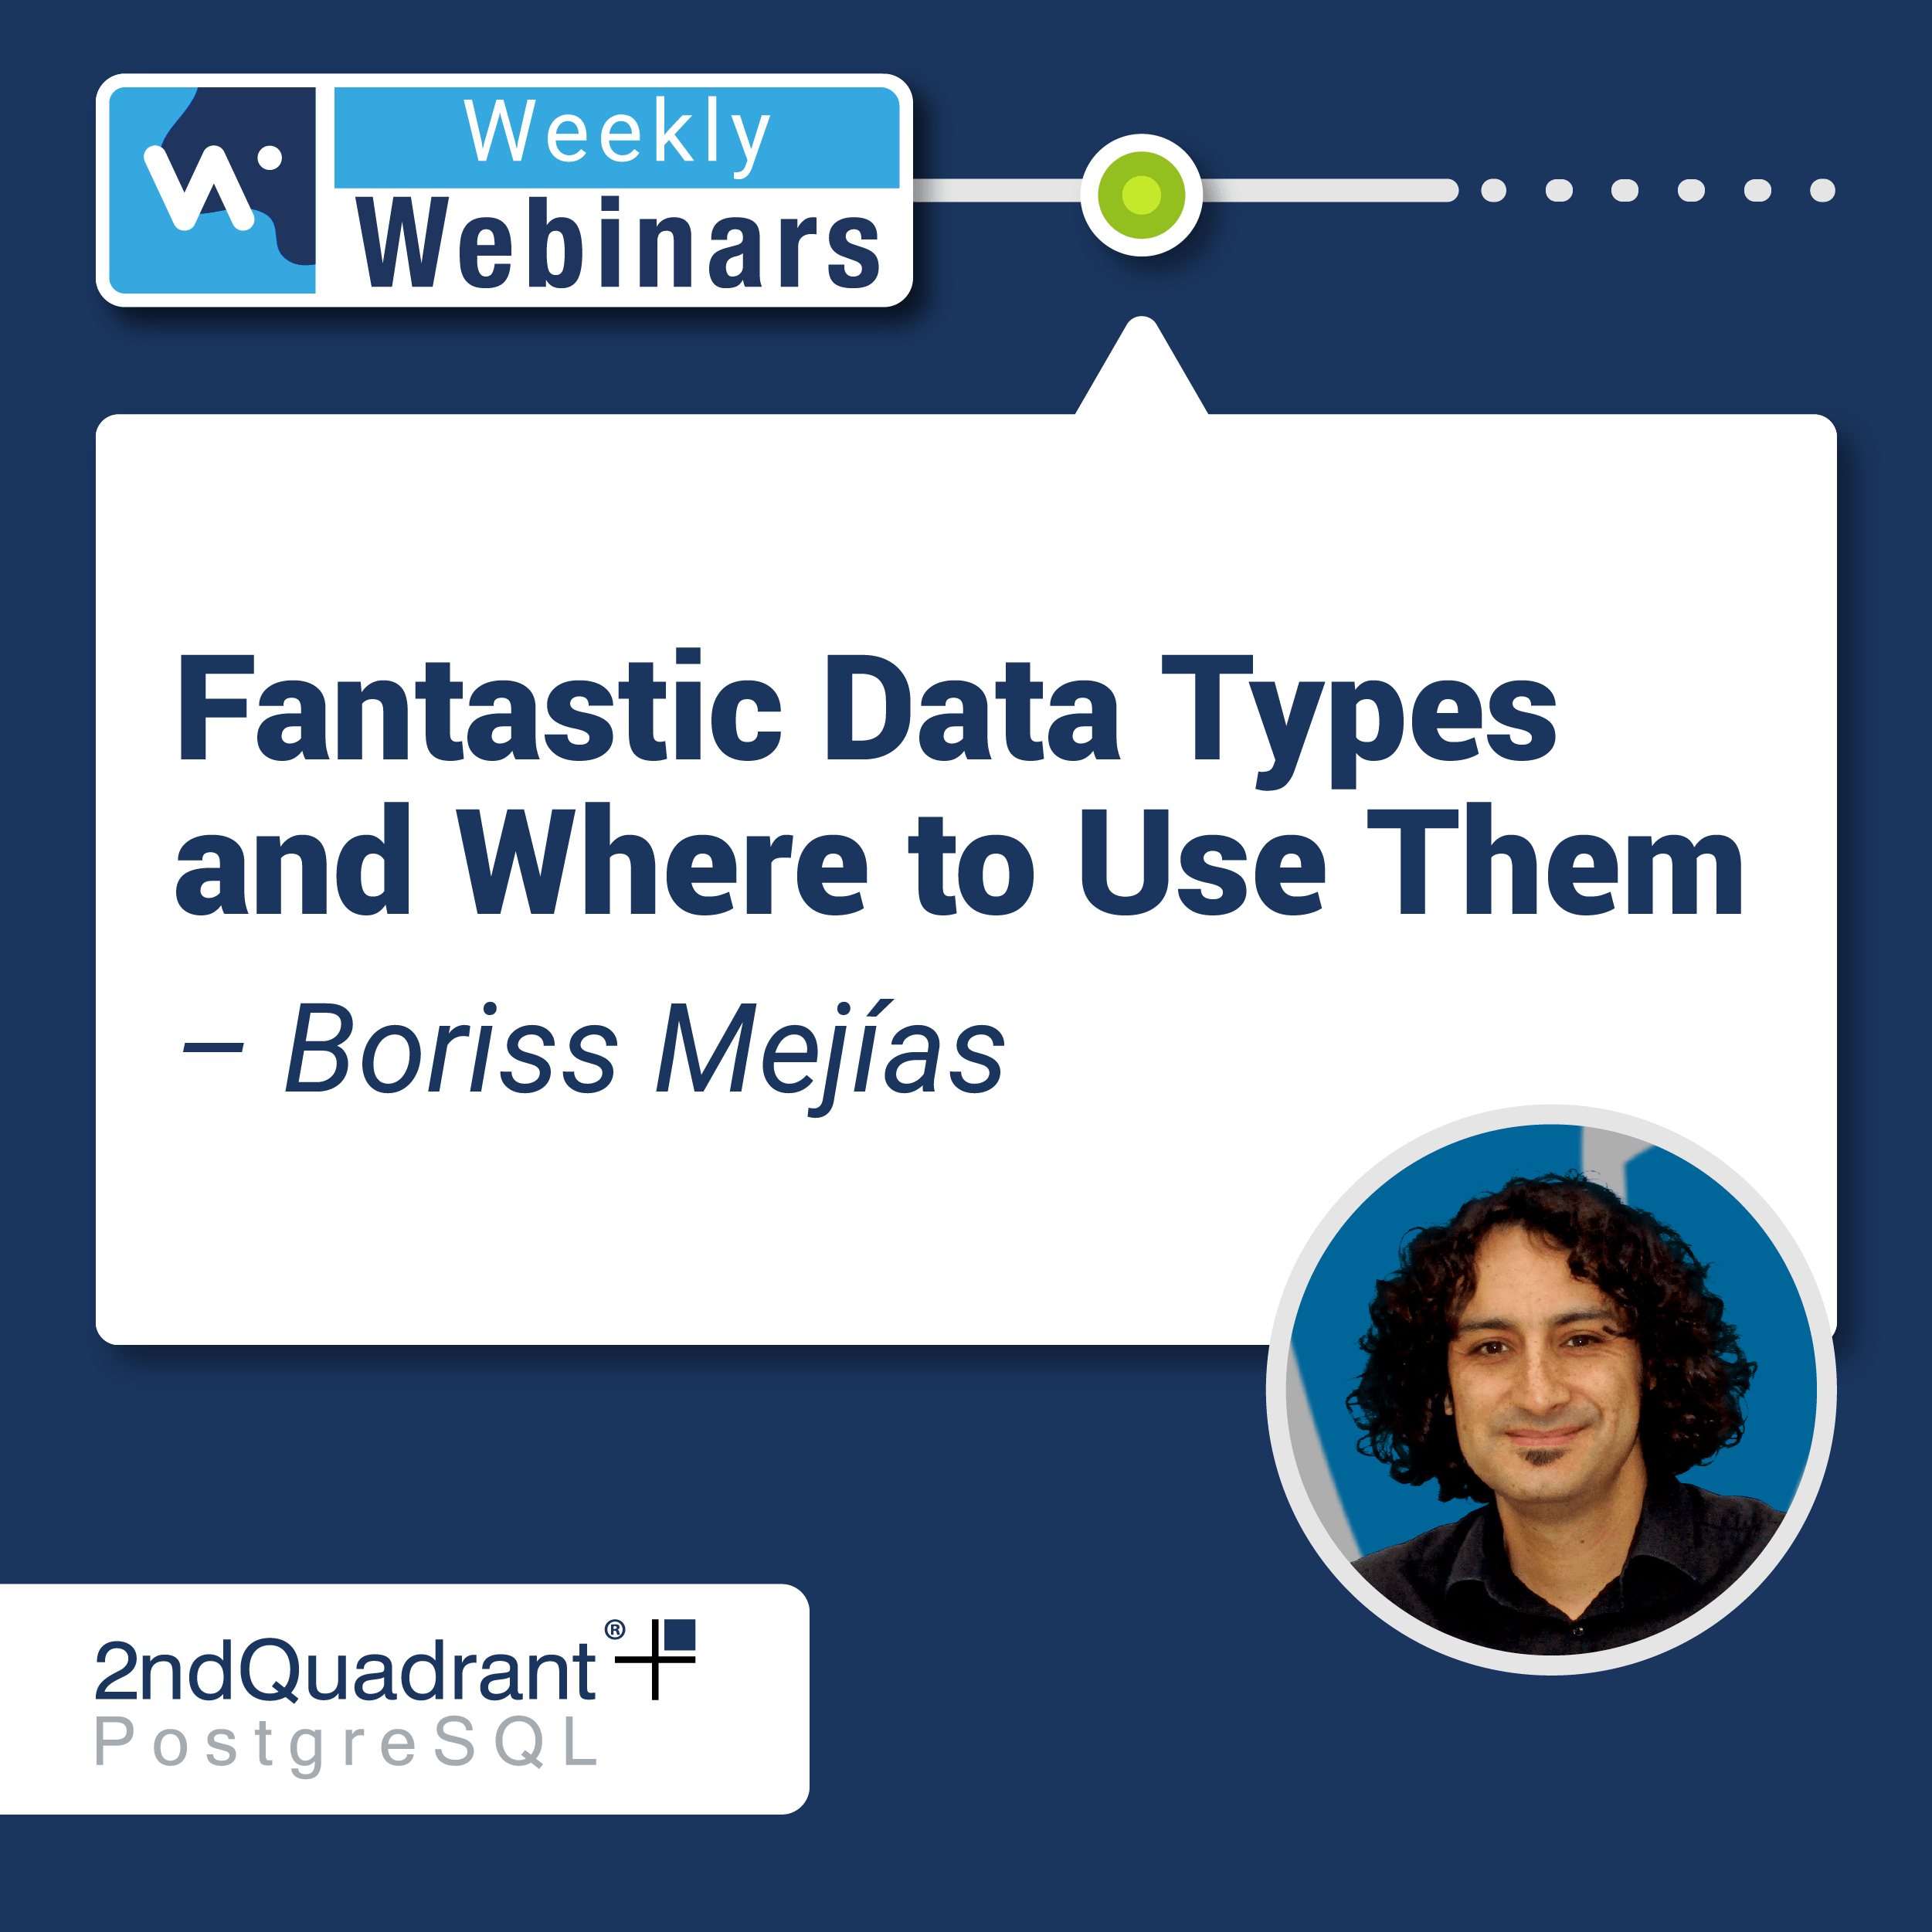 Fantastic Data Types and Where to Use Them